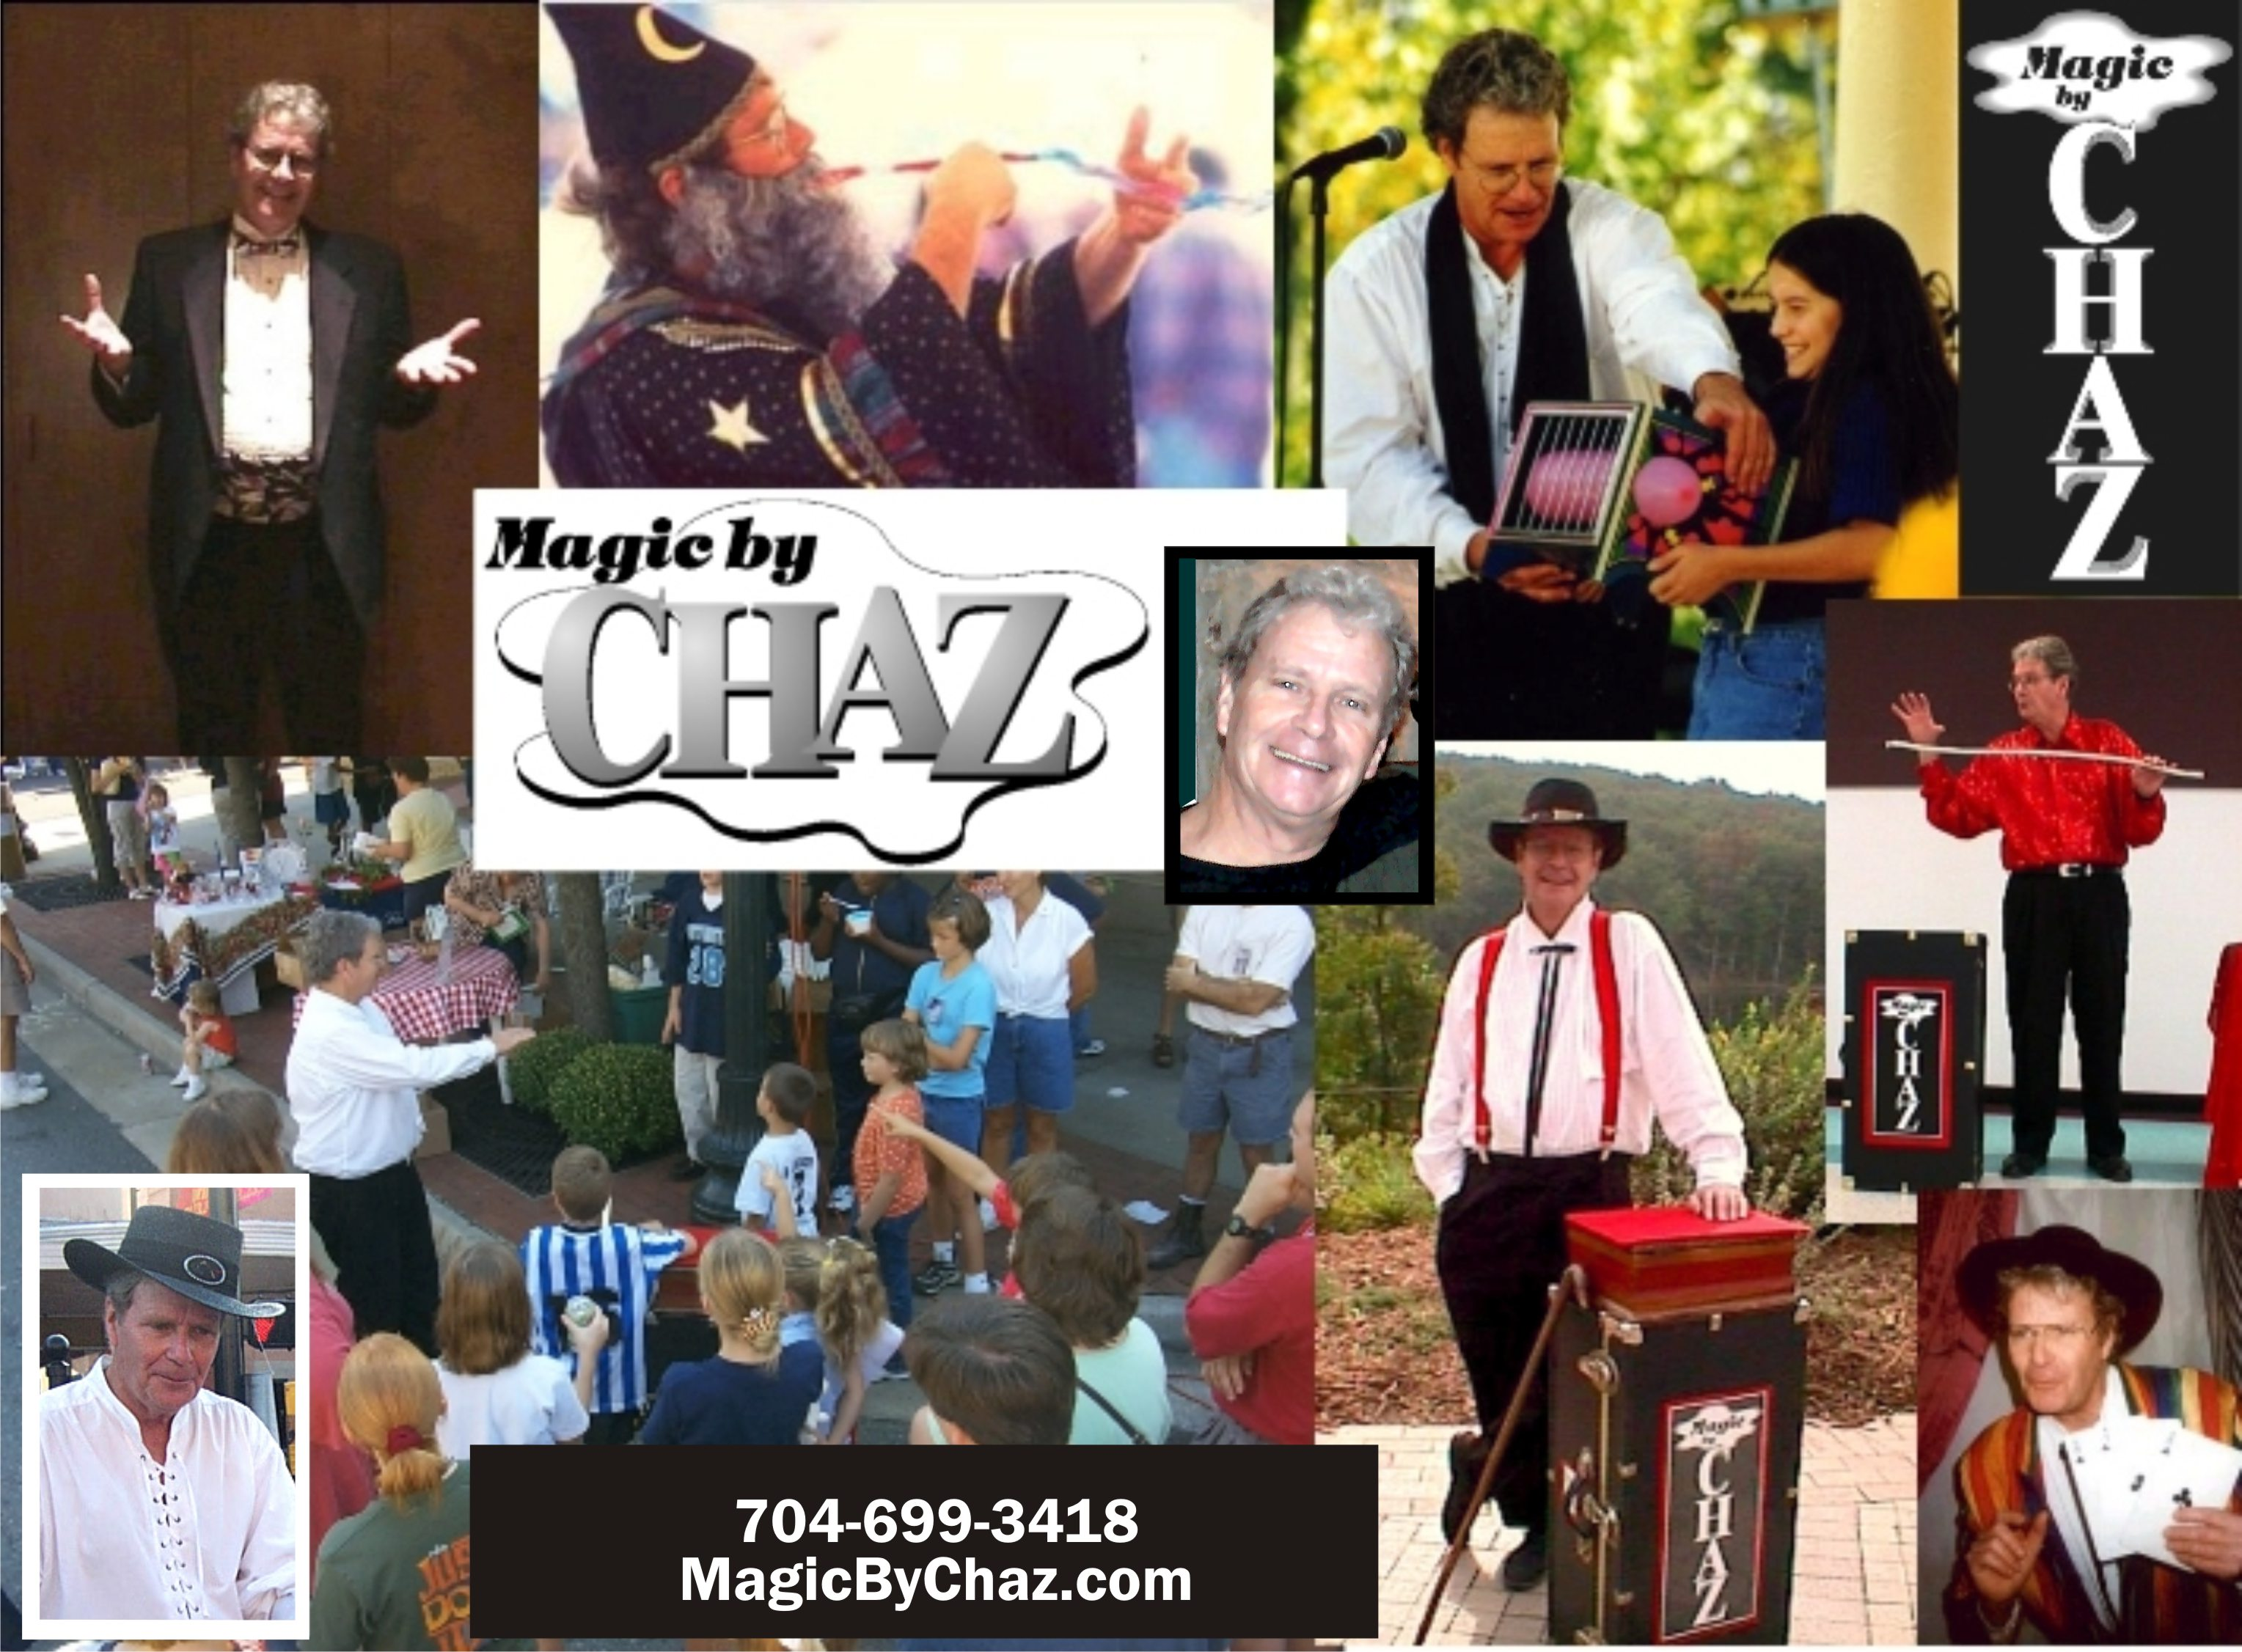 MAGIC by CHAZ | Magician - NC SC VA WV TN GA FL | Festivals, Meetings, Schools, Corporate Entertainment